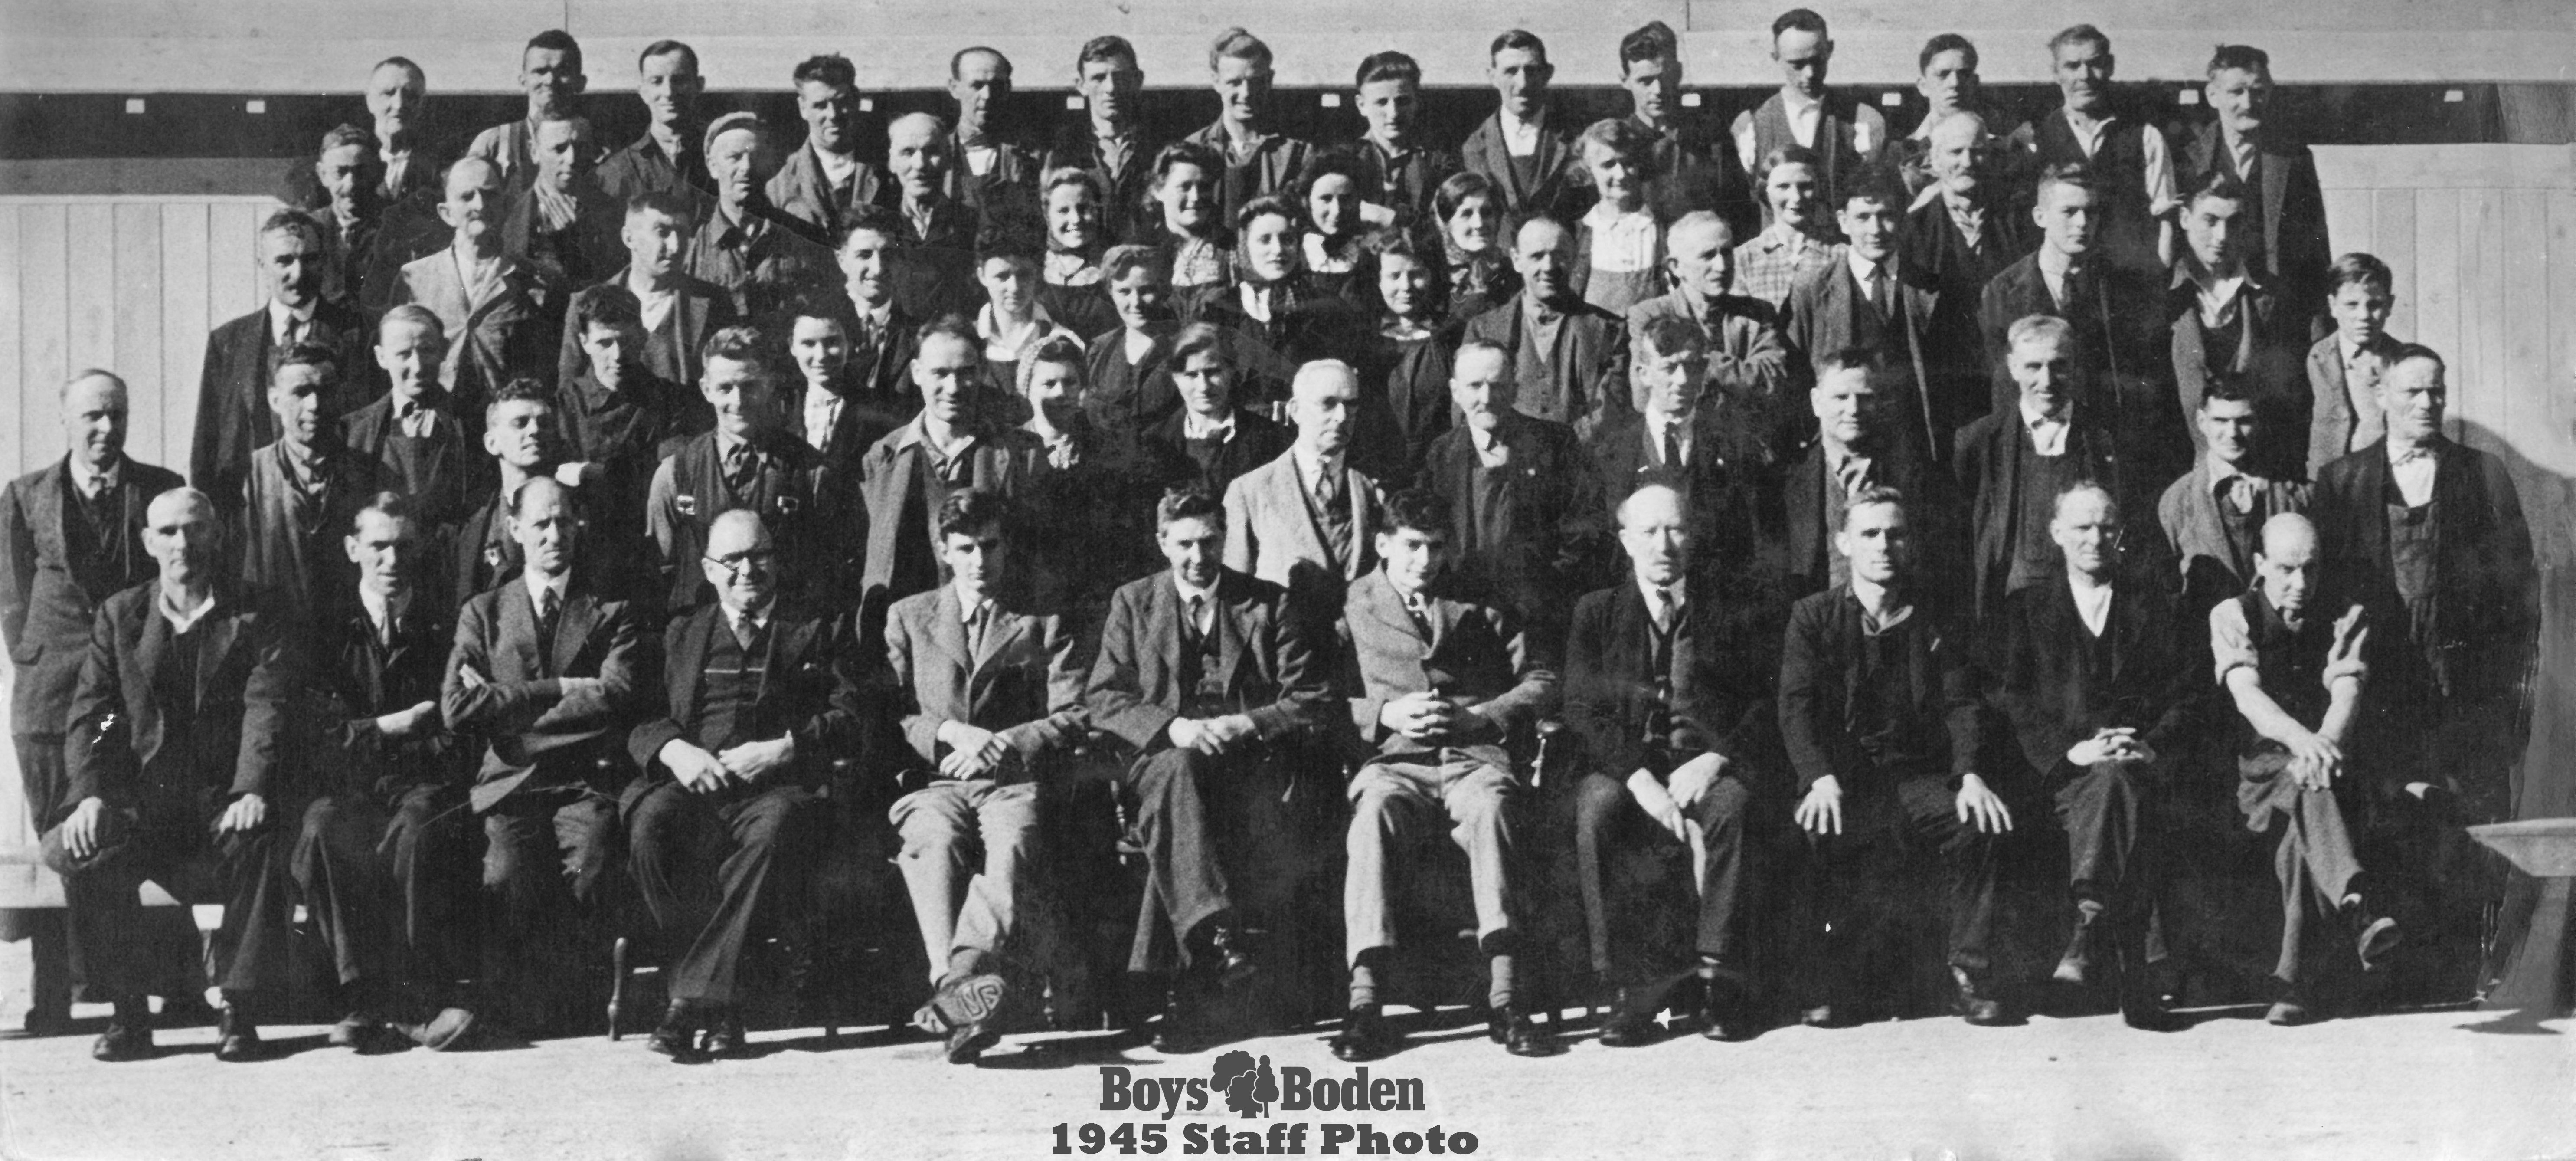 Boysa and boden staff photo 1945